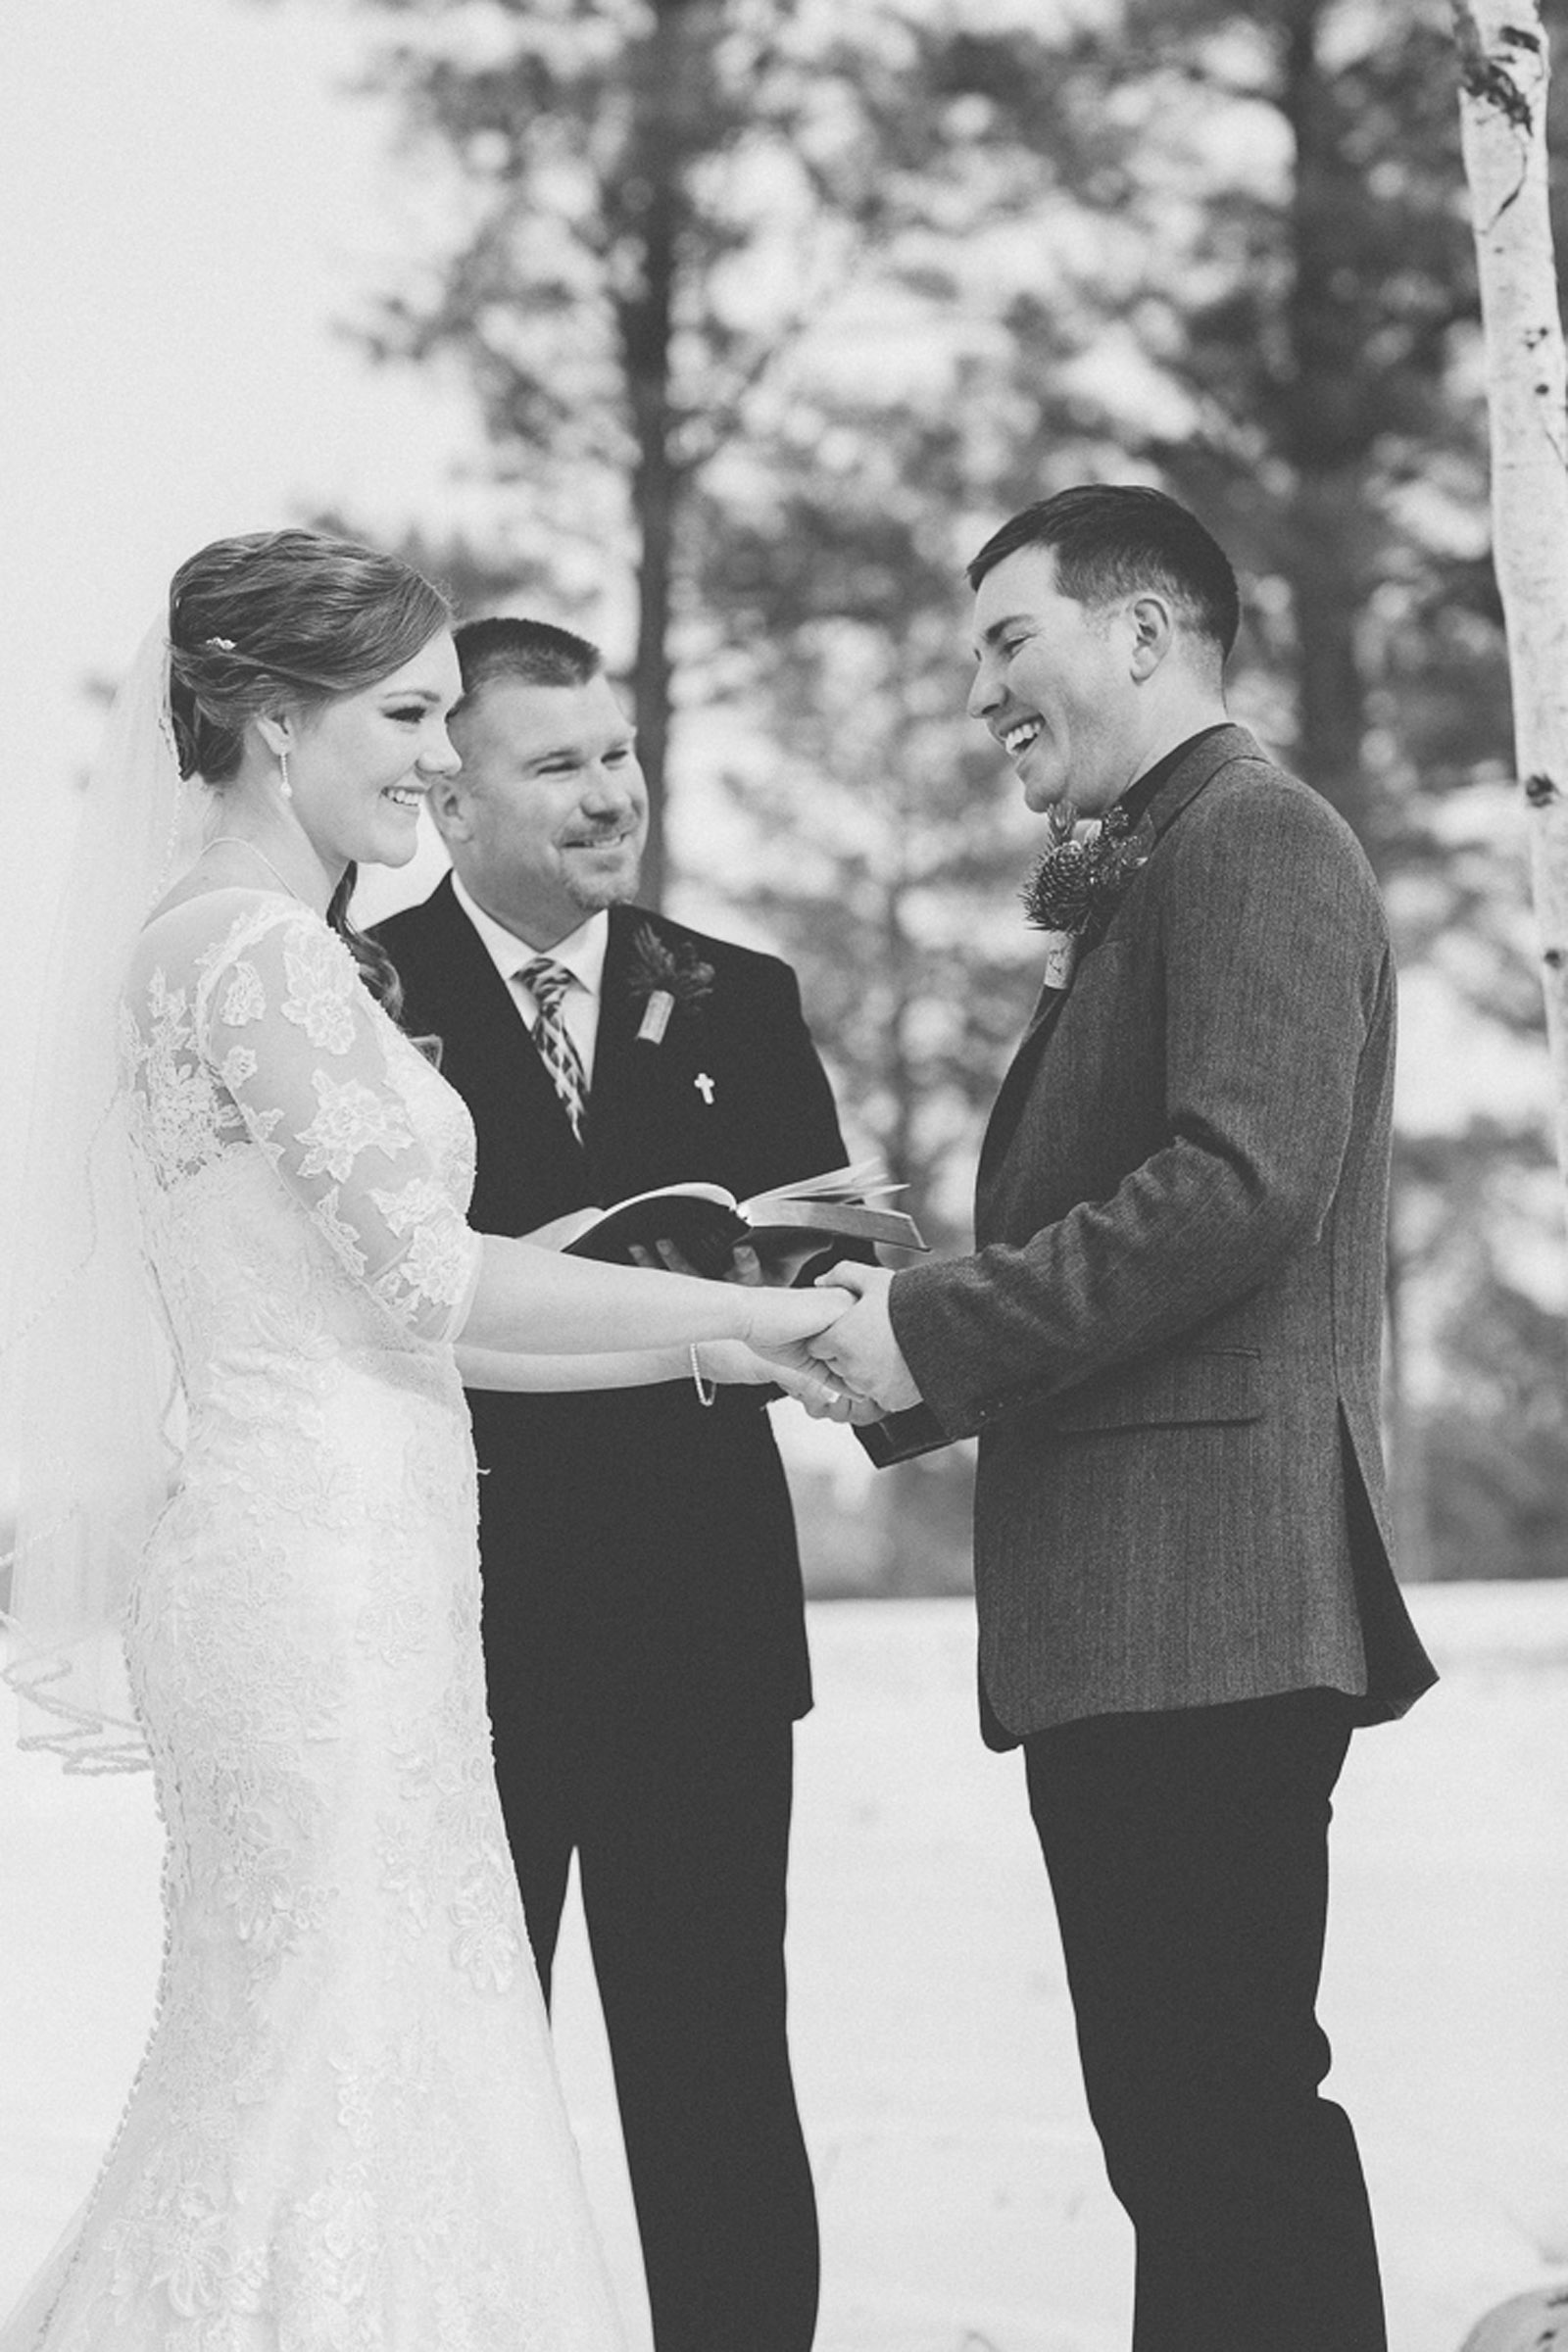 119-wedding-ceremony-in-pagosa-springs-wedding-photographer-snow-winter-wedding